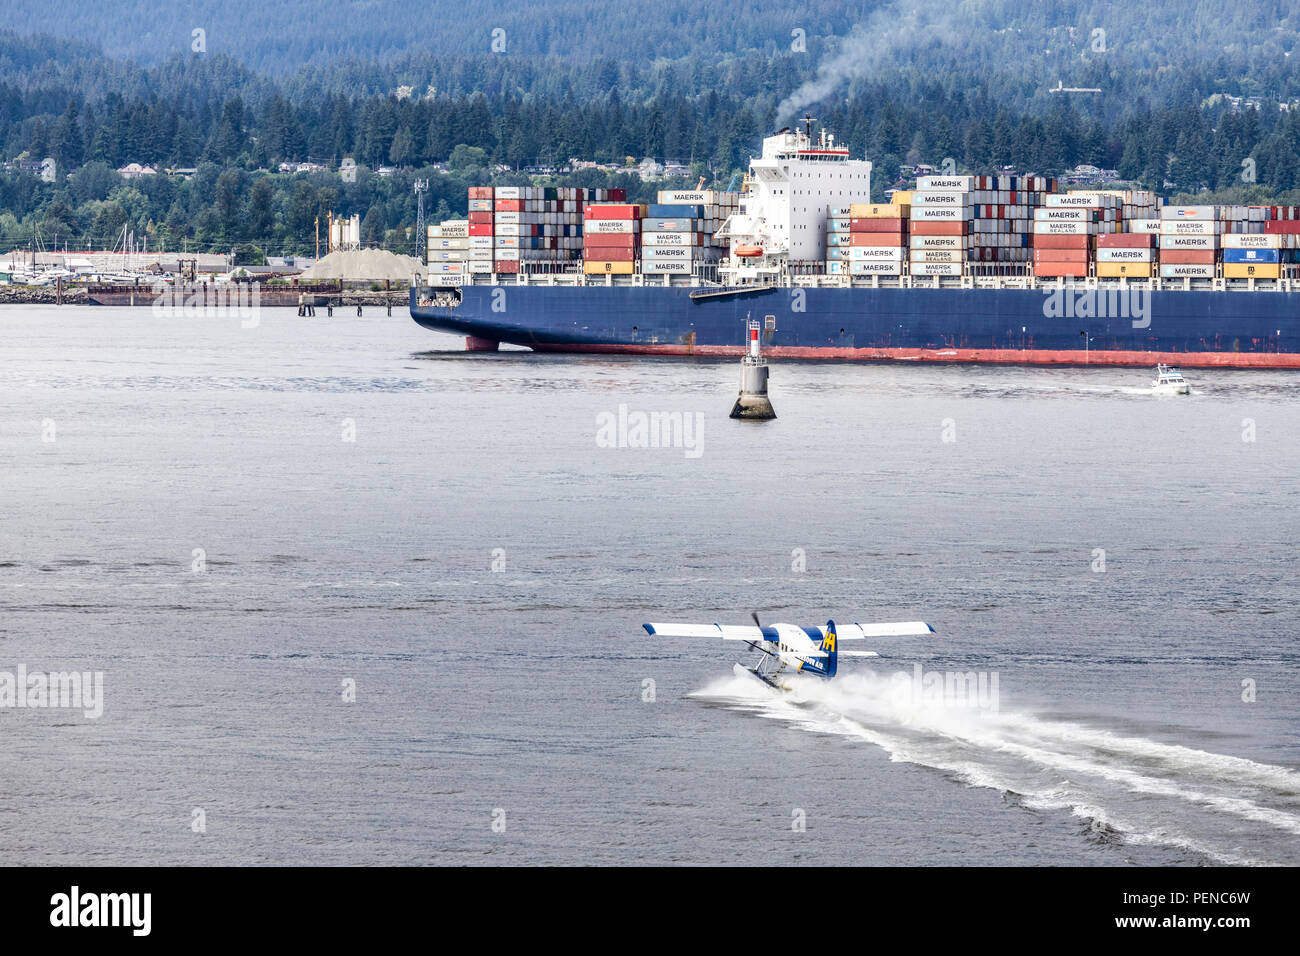 A tourist seaplane taking off in quite close proximity to the container ship Seamax Stratford in the harbour at Vancouver, British Columbia, Canada - Stock Image